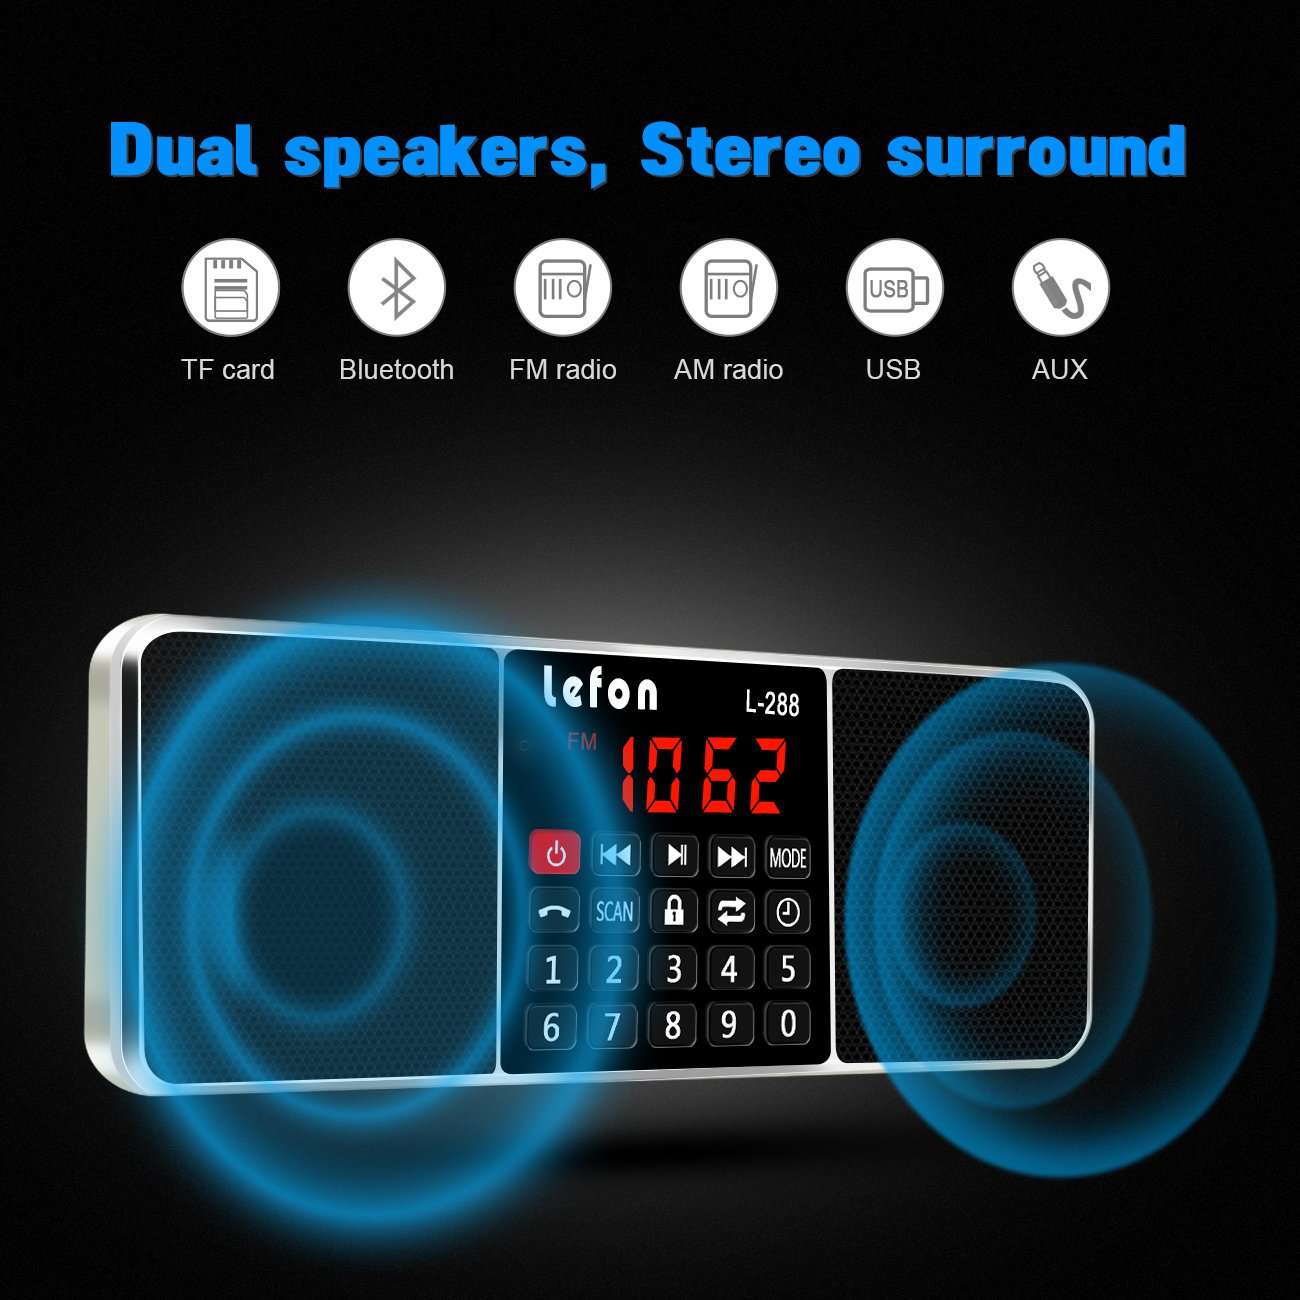 LEFON Multifunction Digital AM FM Radio Bluetooth Media Speaker MP3 Music Player Support TF Card/USB Disk with LED Screen Display and Setting Timing Shutdown Function (Gold-Upgraded Version) by Lefon (Image #2)